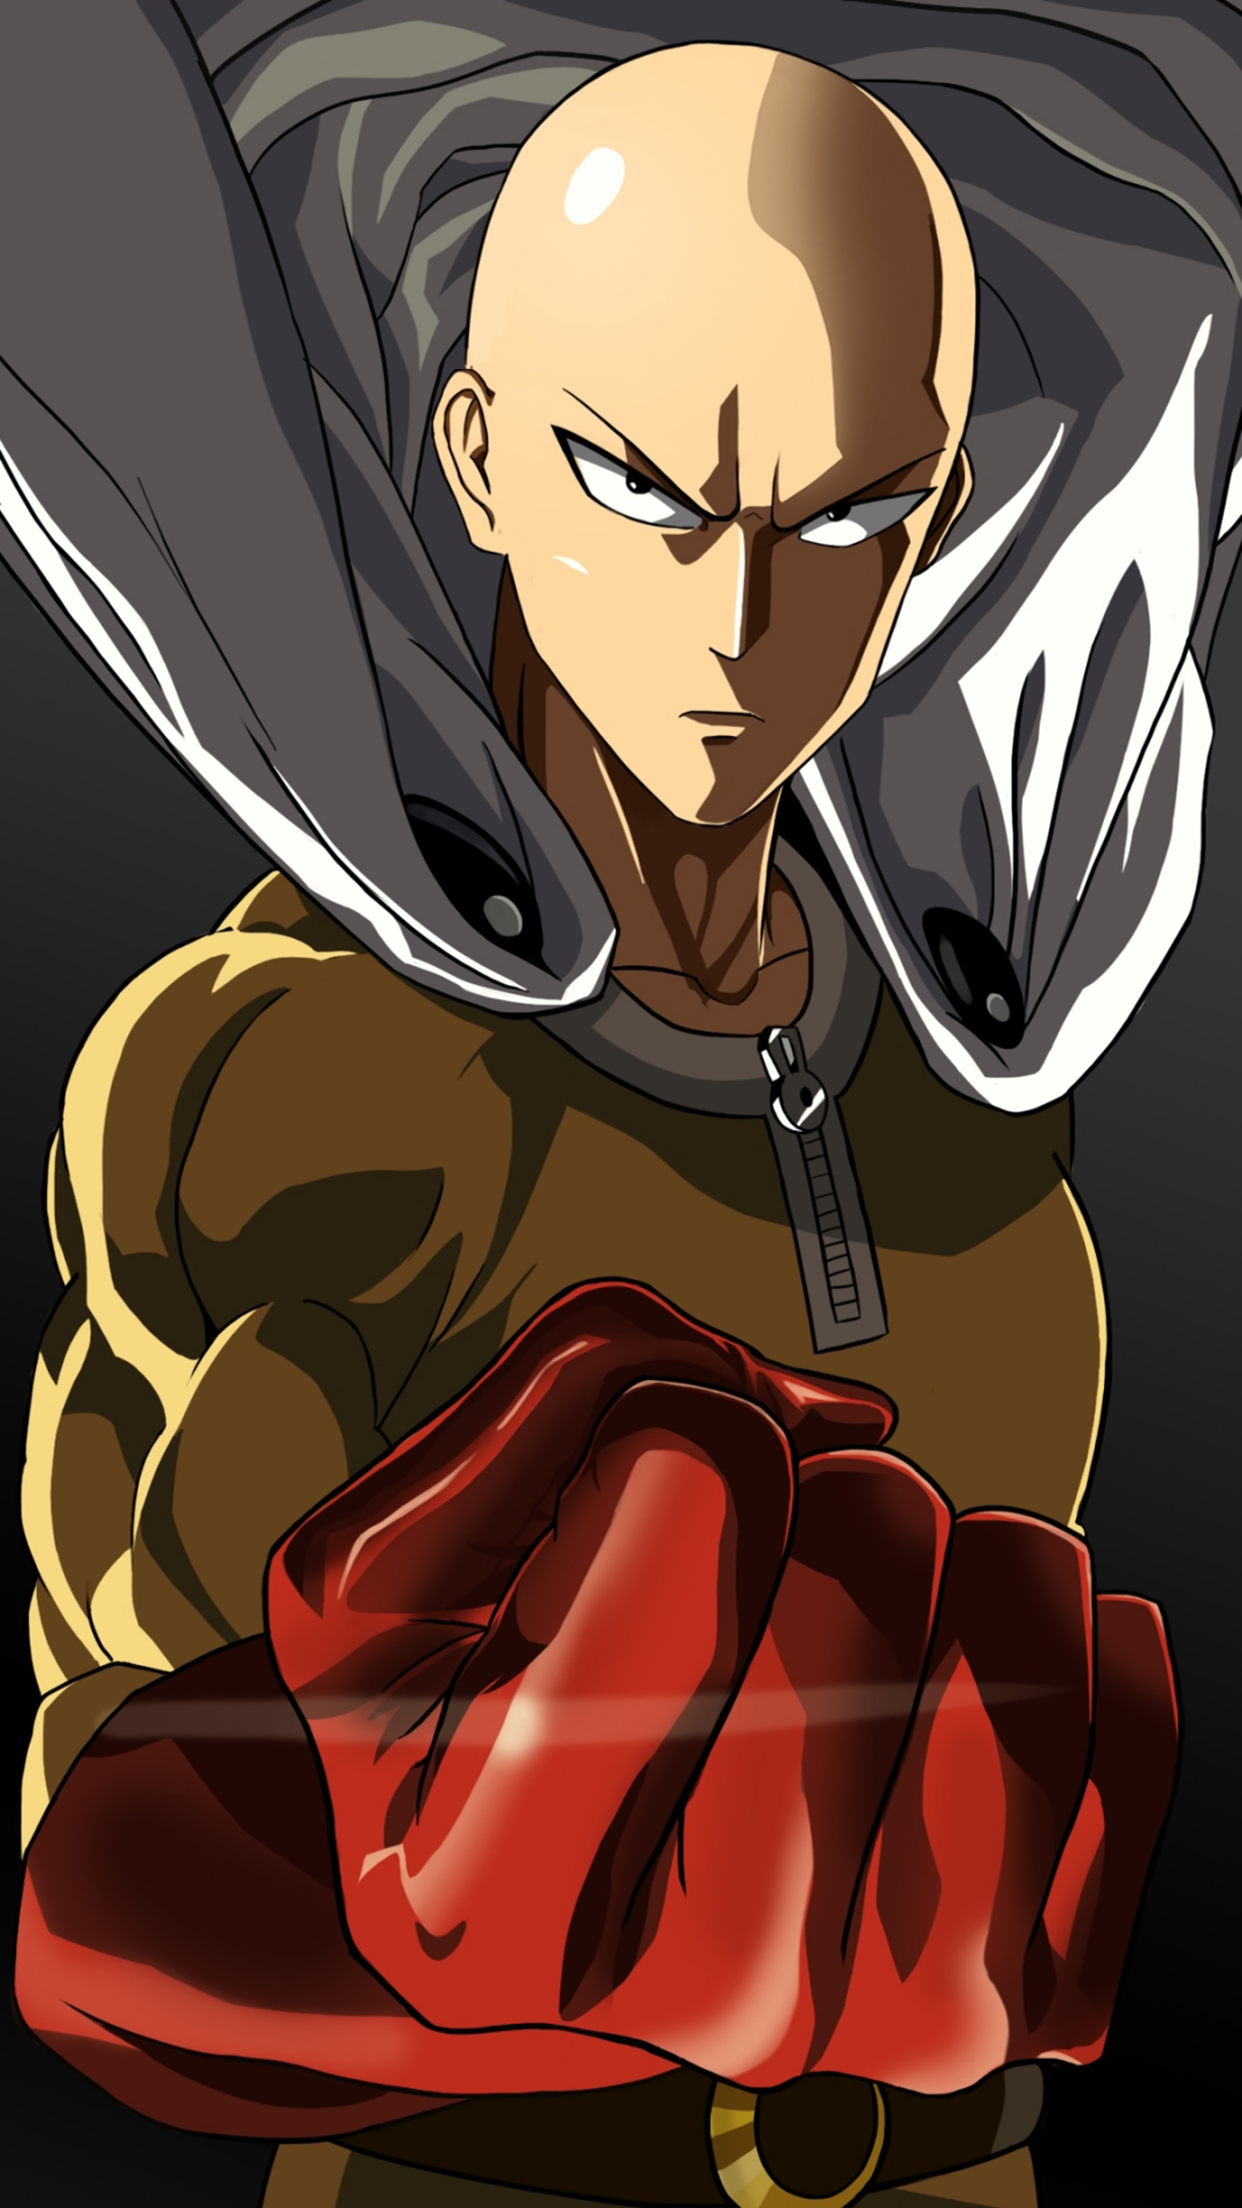 One Punch Man Standing 3Wallpapers iPhone Parallax 3Wallpapers : notre sélection de fonds décran du 22/01/2017